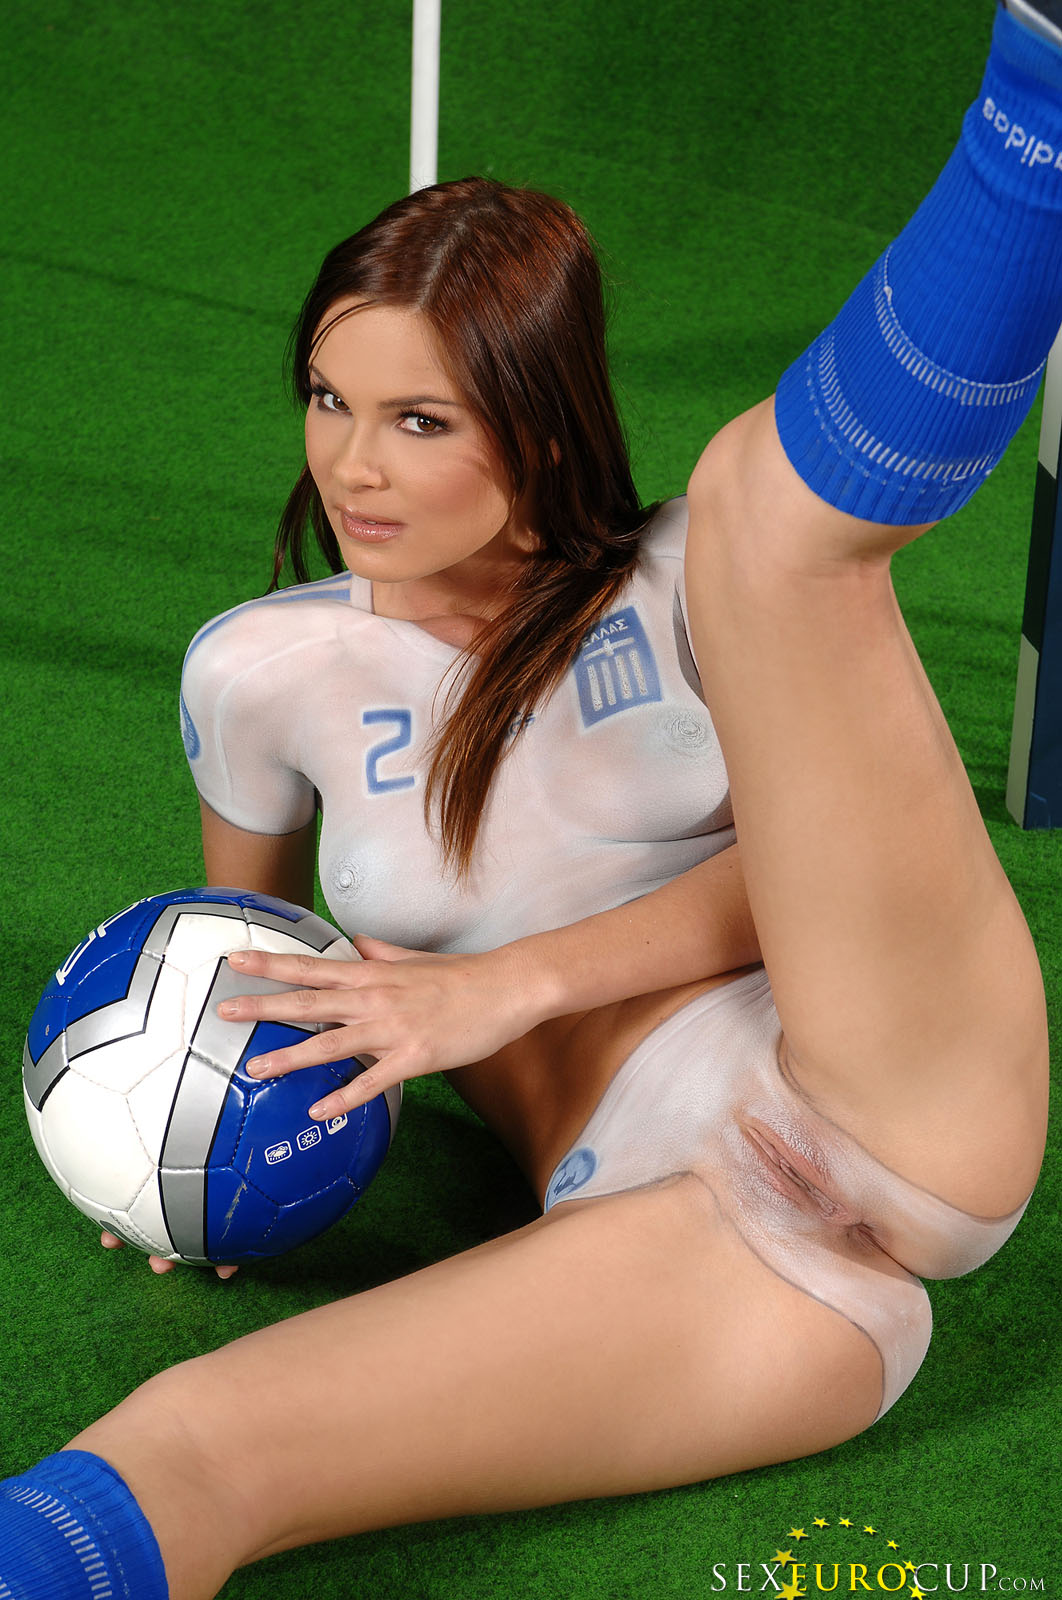 sex euro cup images